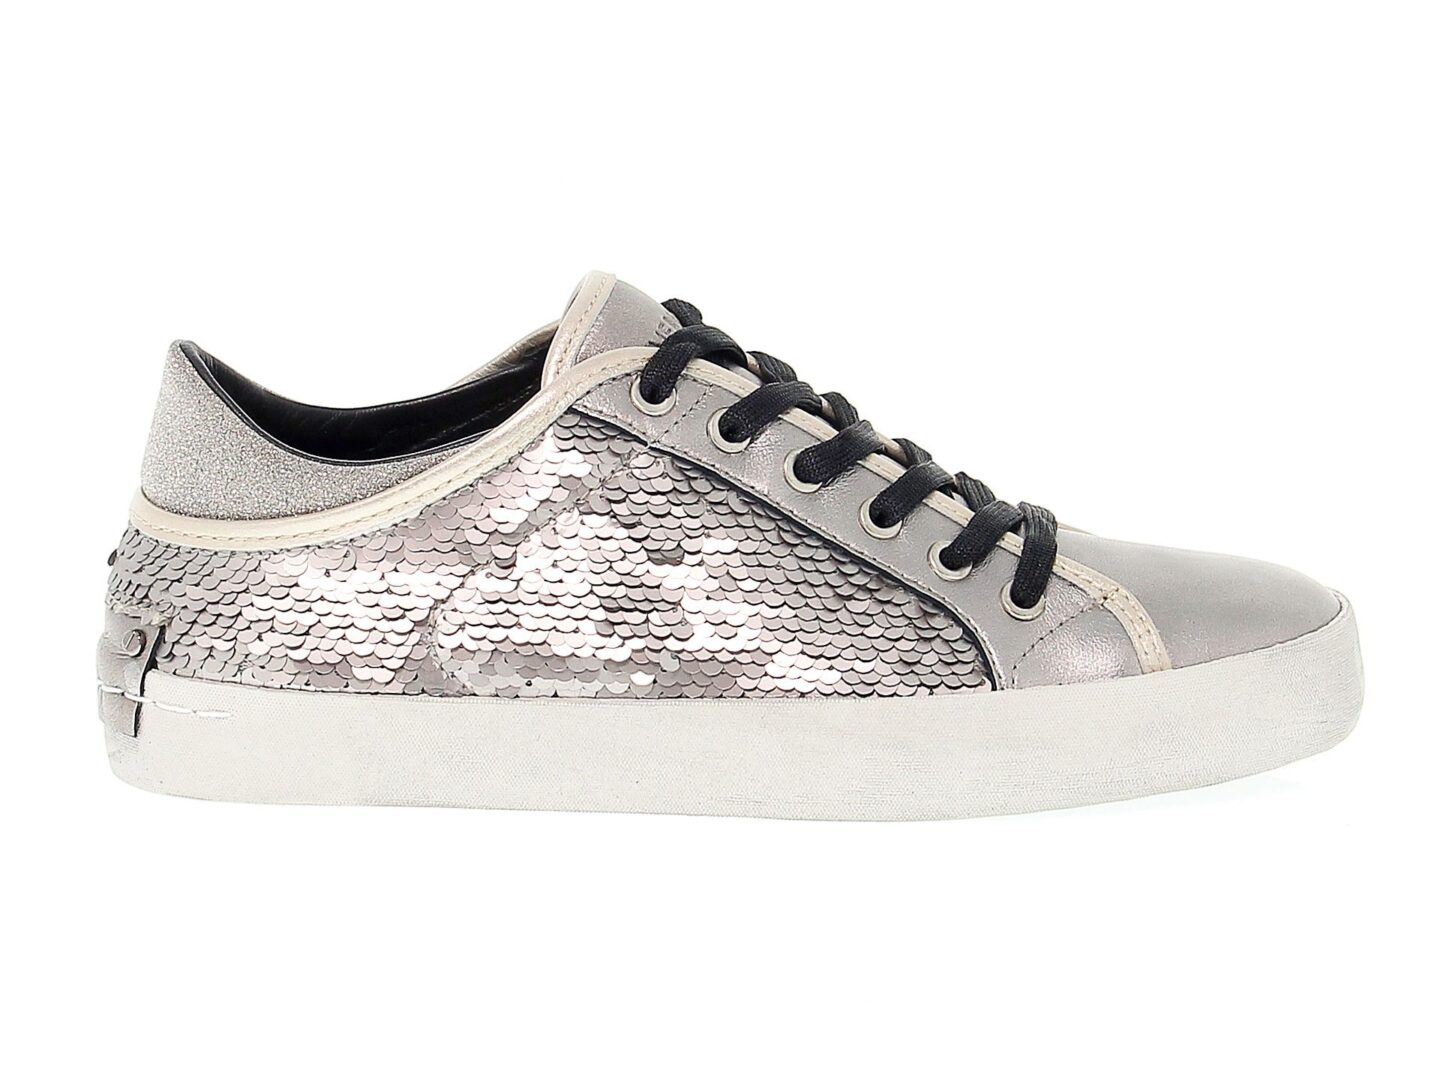 CRIME LONDON WOMEN'S 25035A1734 SILVER LEATHER SNEAKERS